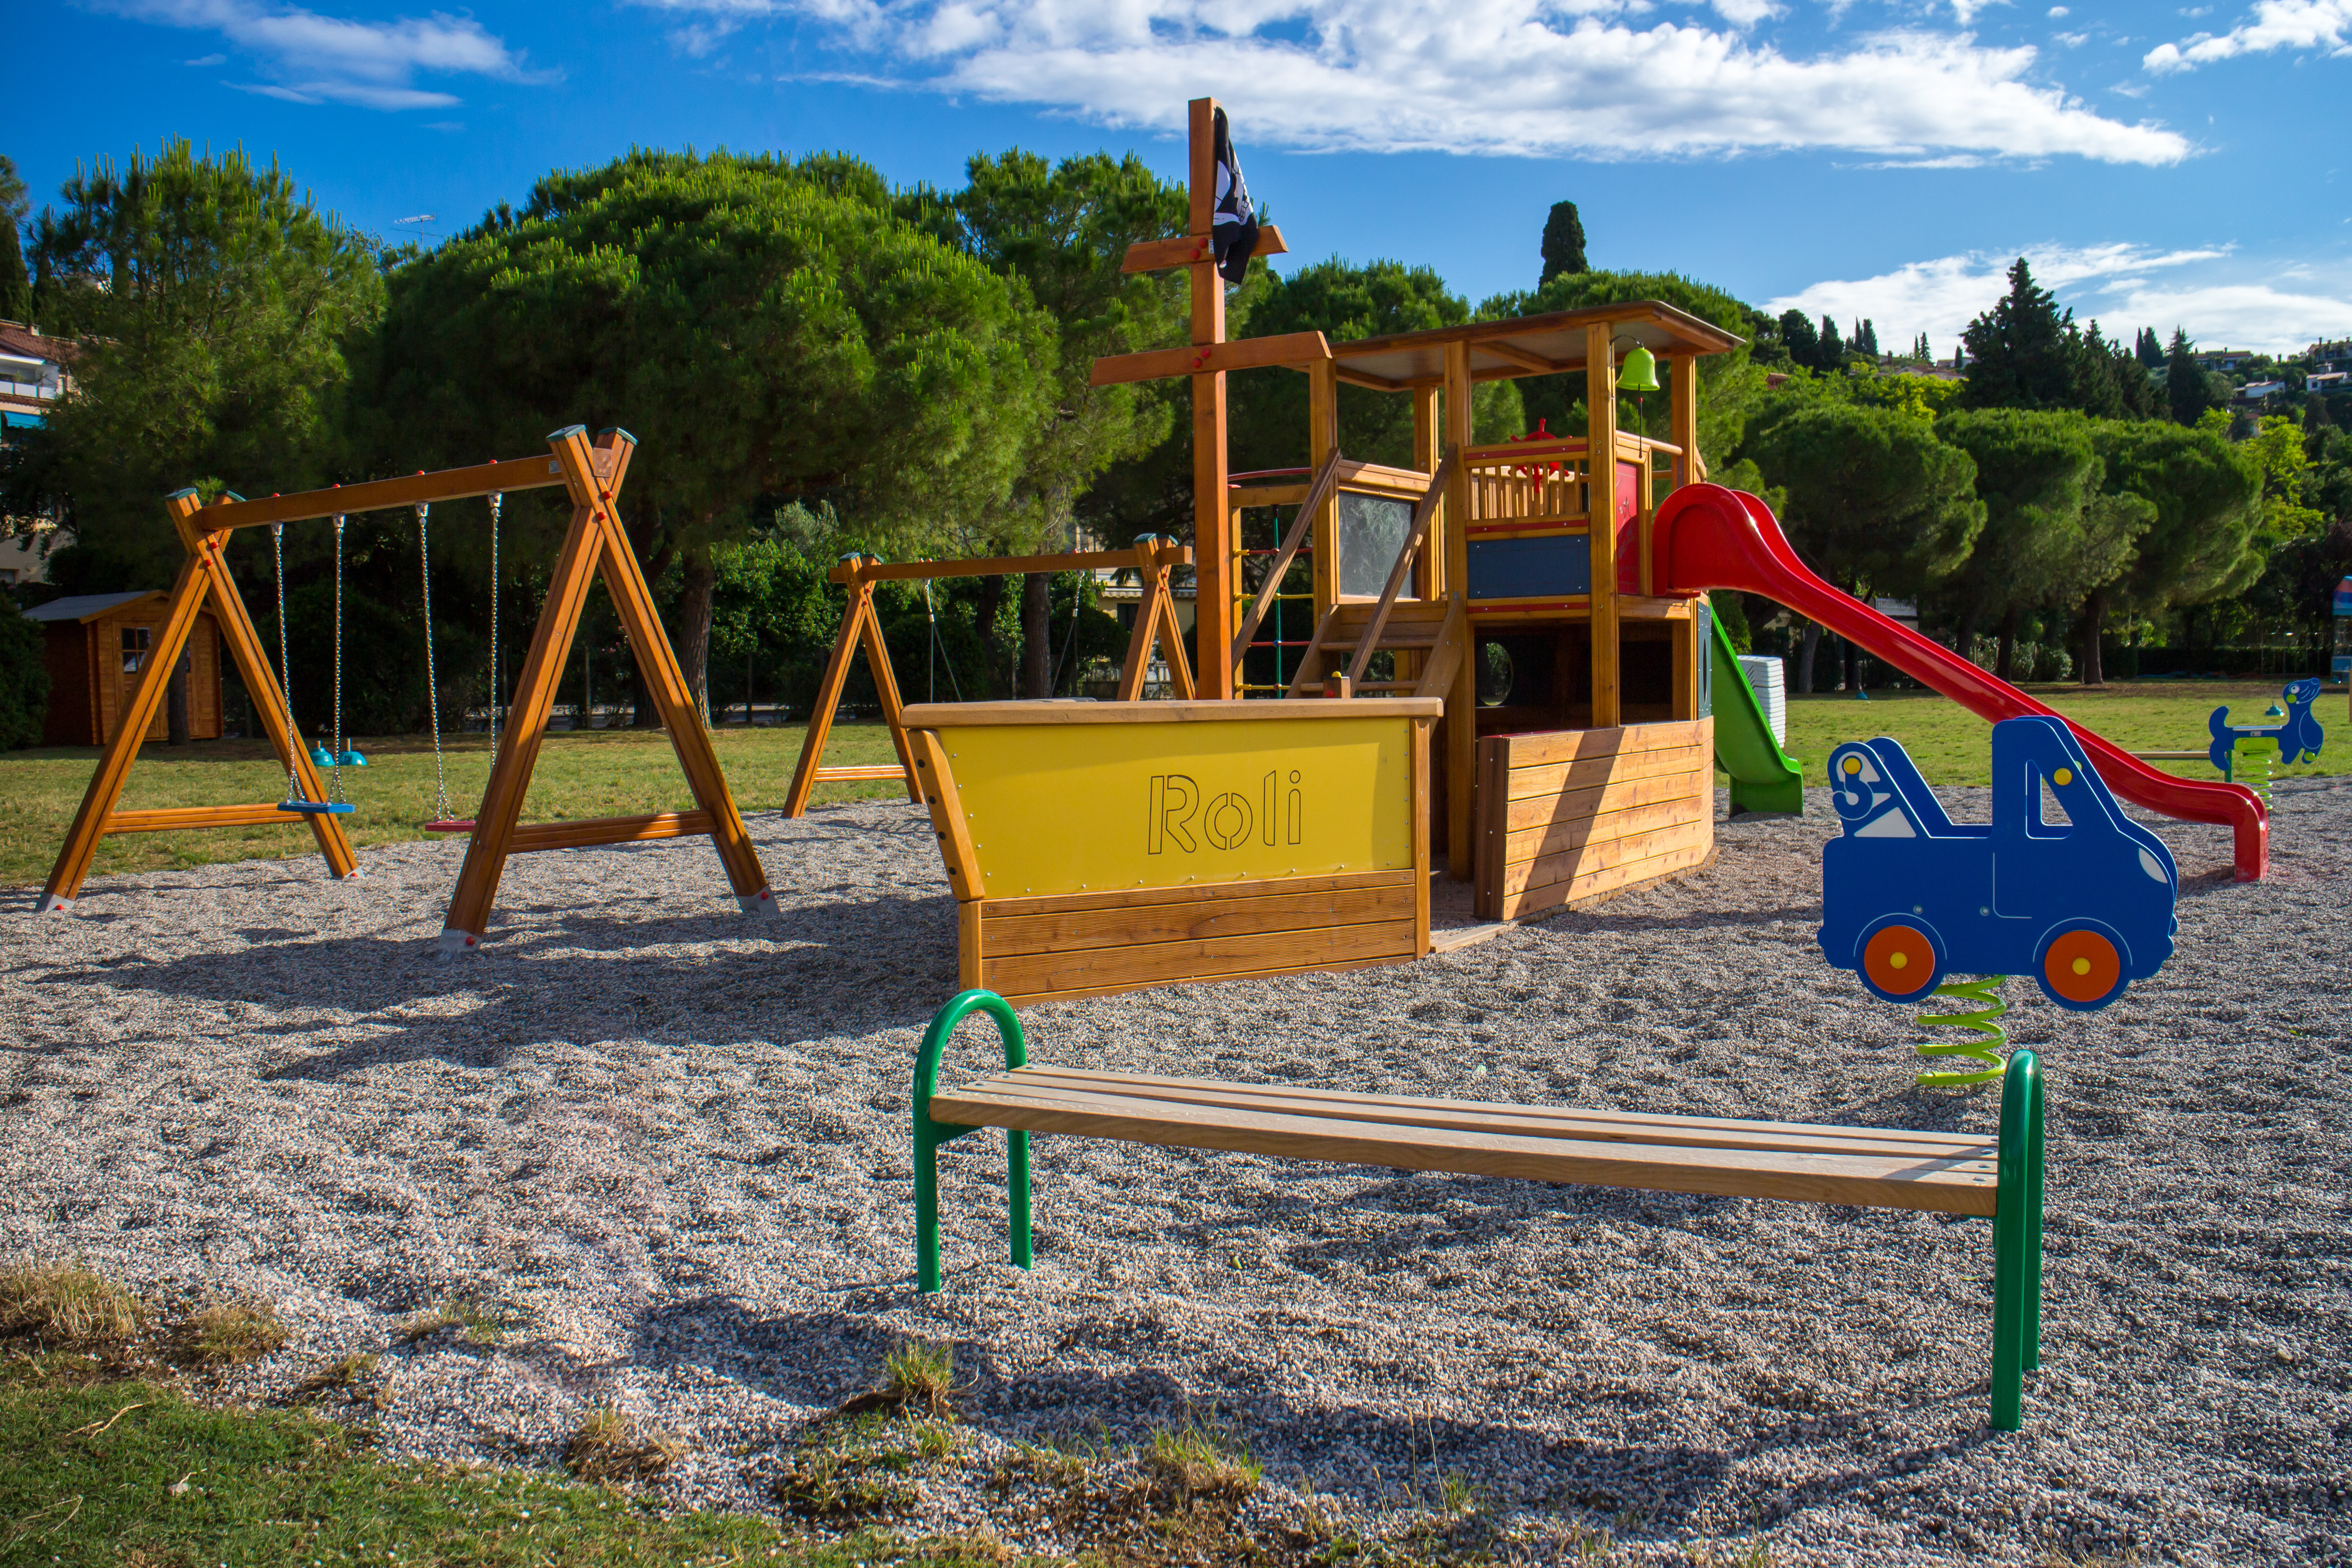 http://www.travelsys.sk/public/users/paxtour/images/fotogaleria_hotel/l_beach_playground_5.jpg.jpg